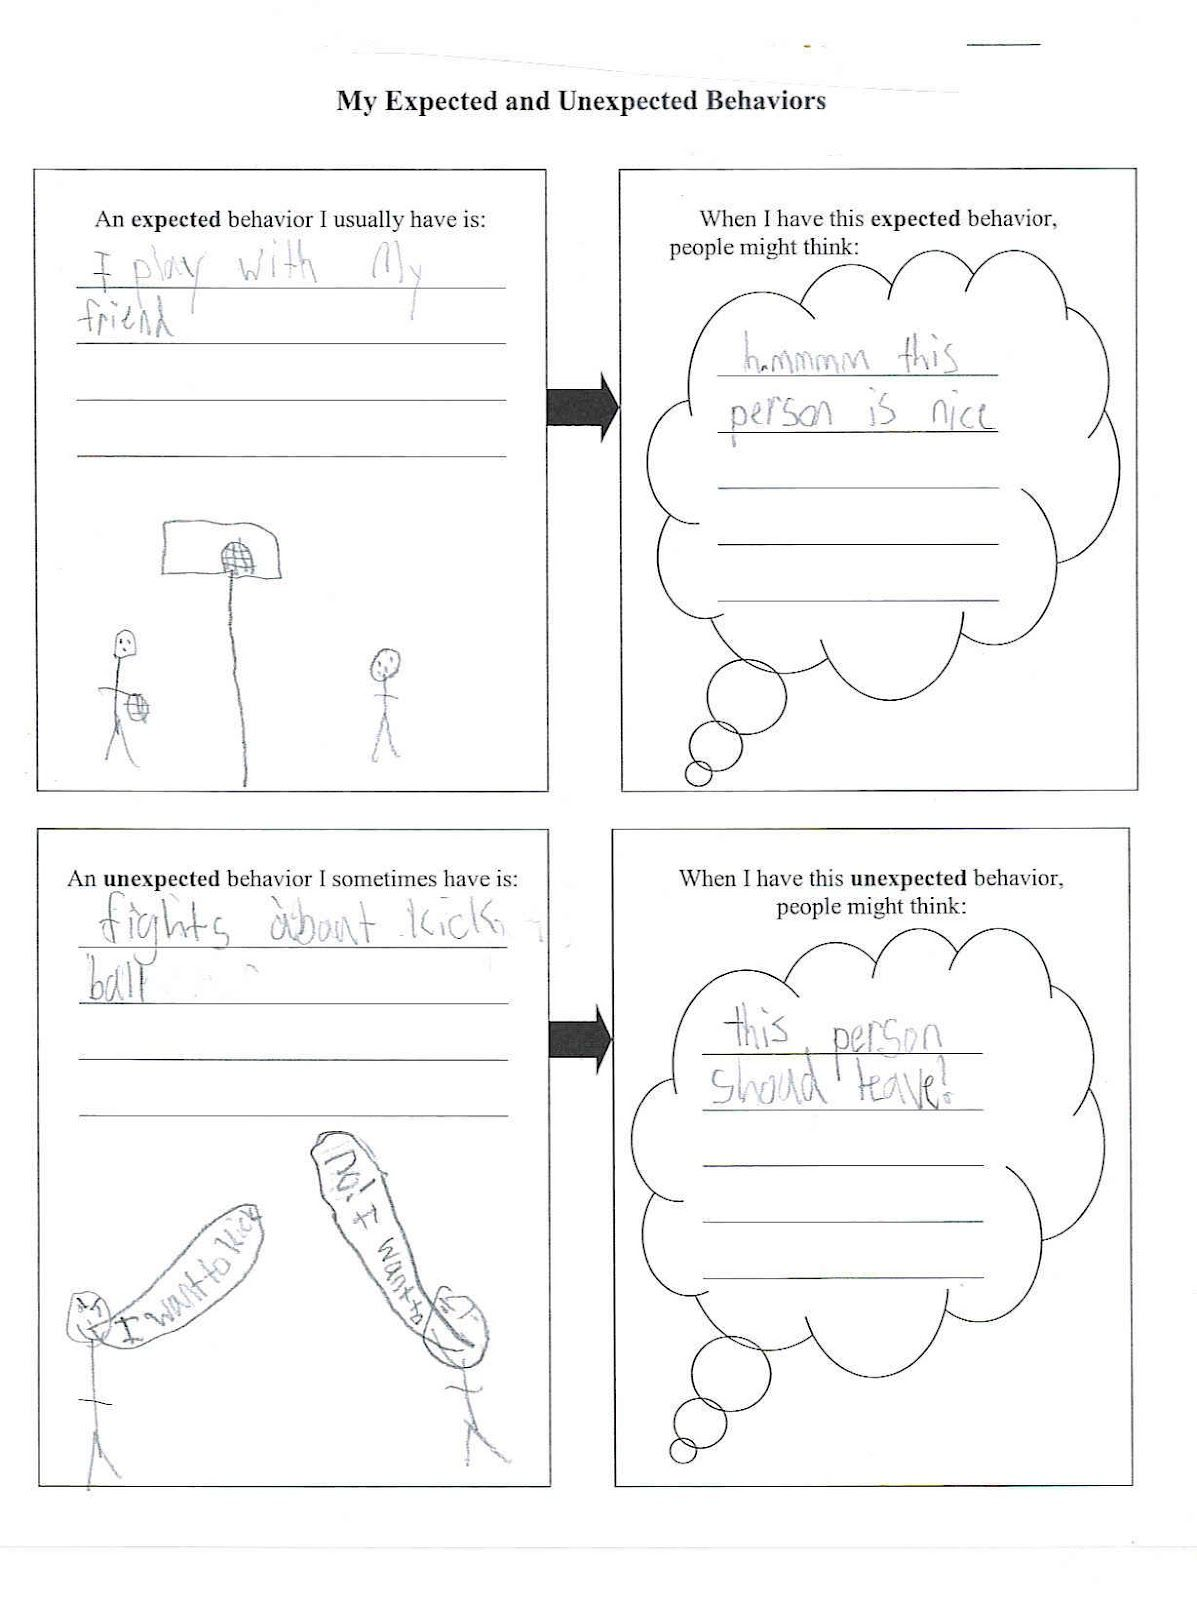 Expected Unexpected Behavior Worksheet These Words Are